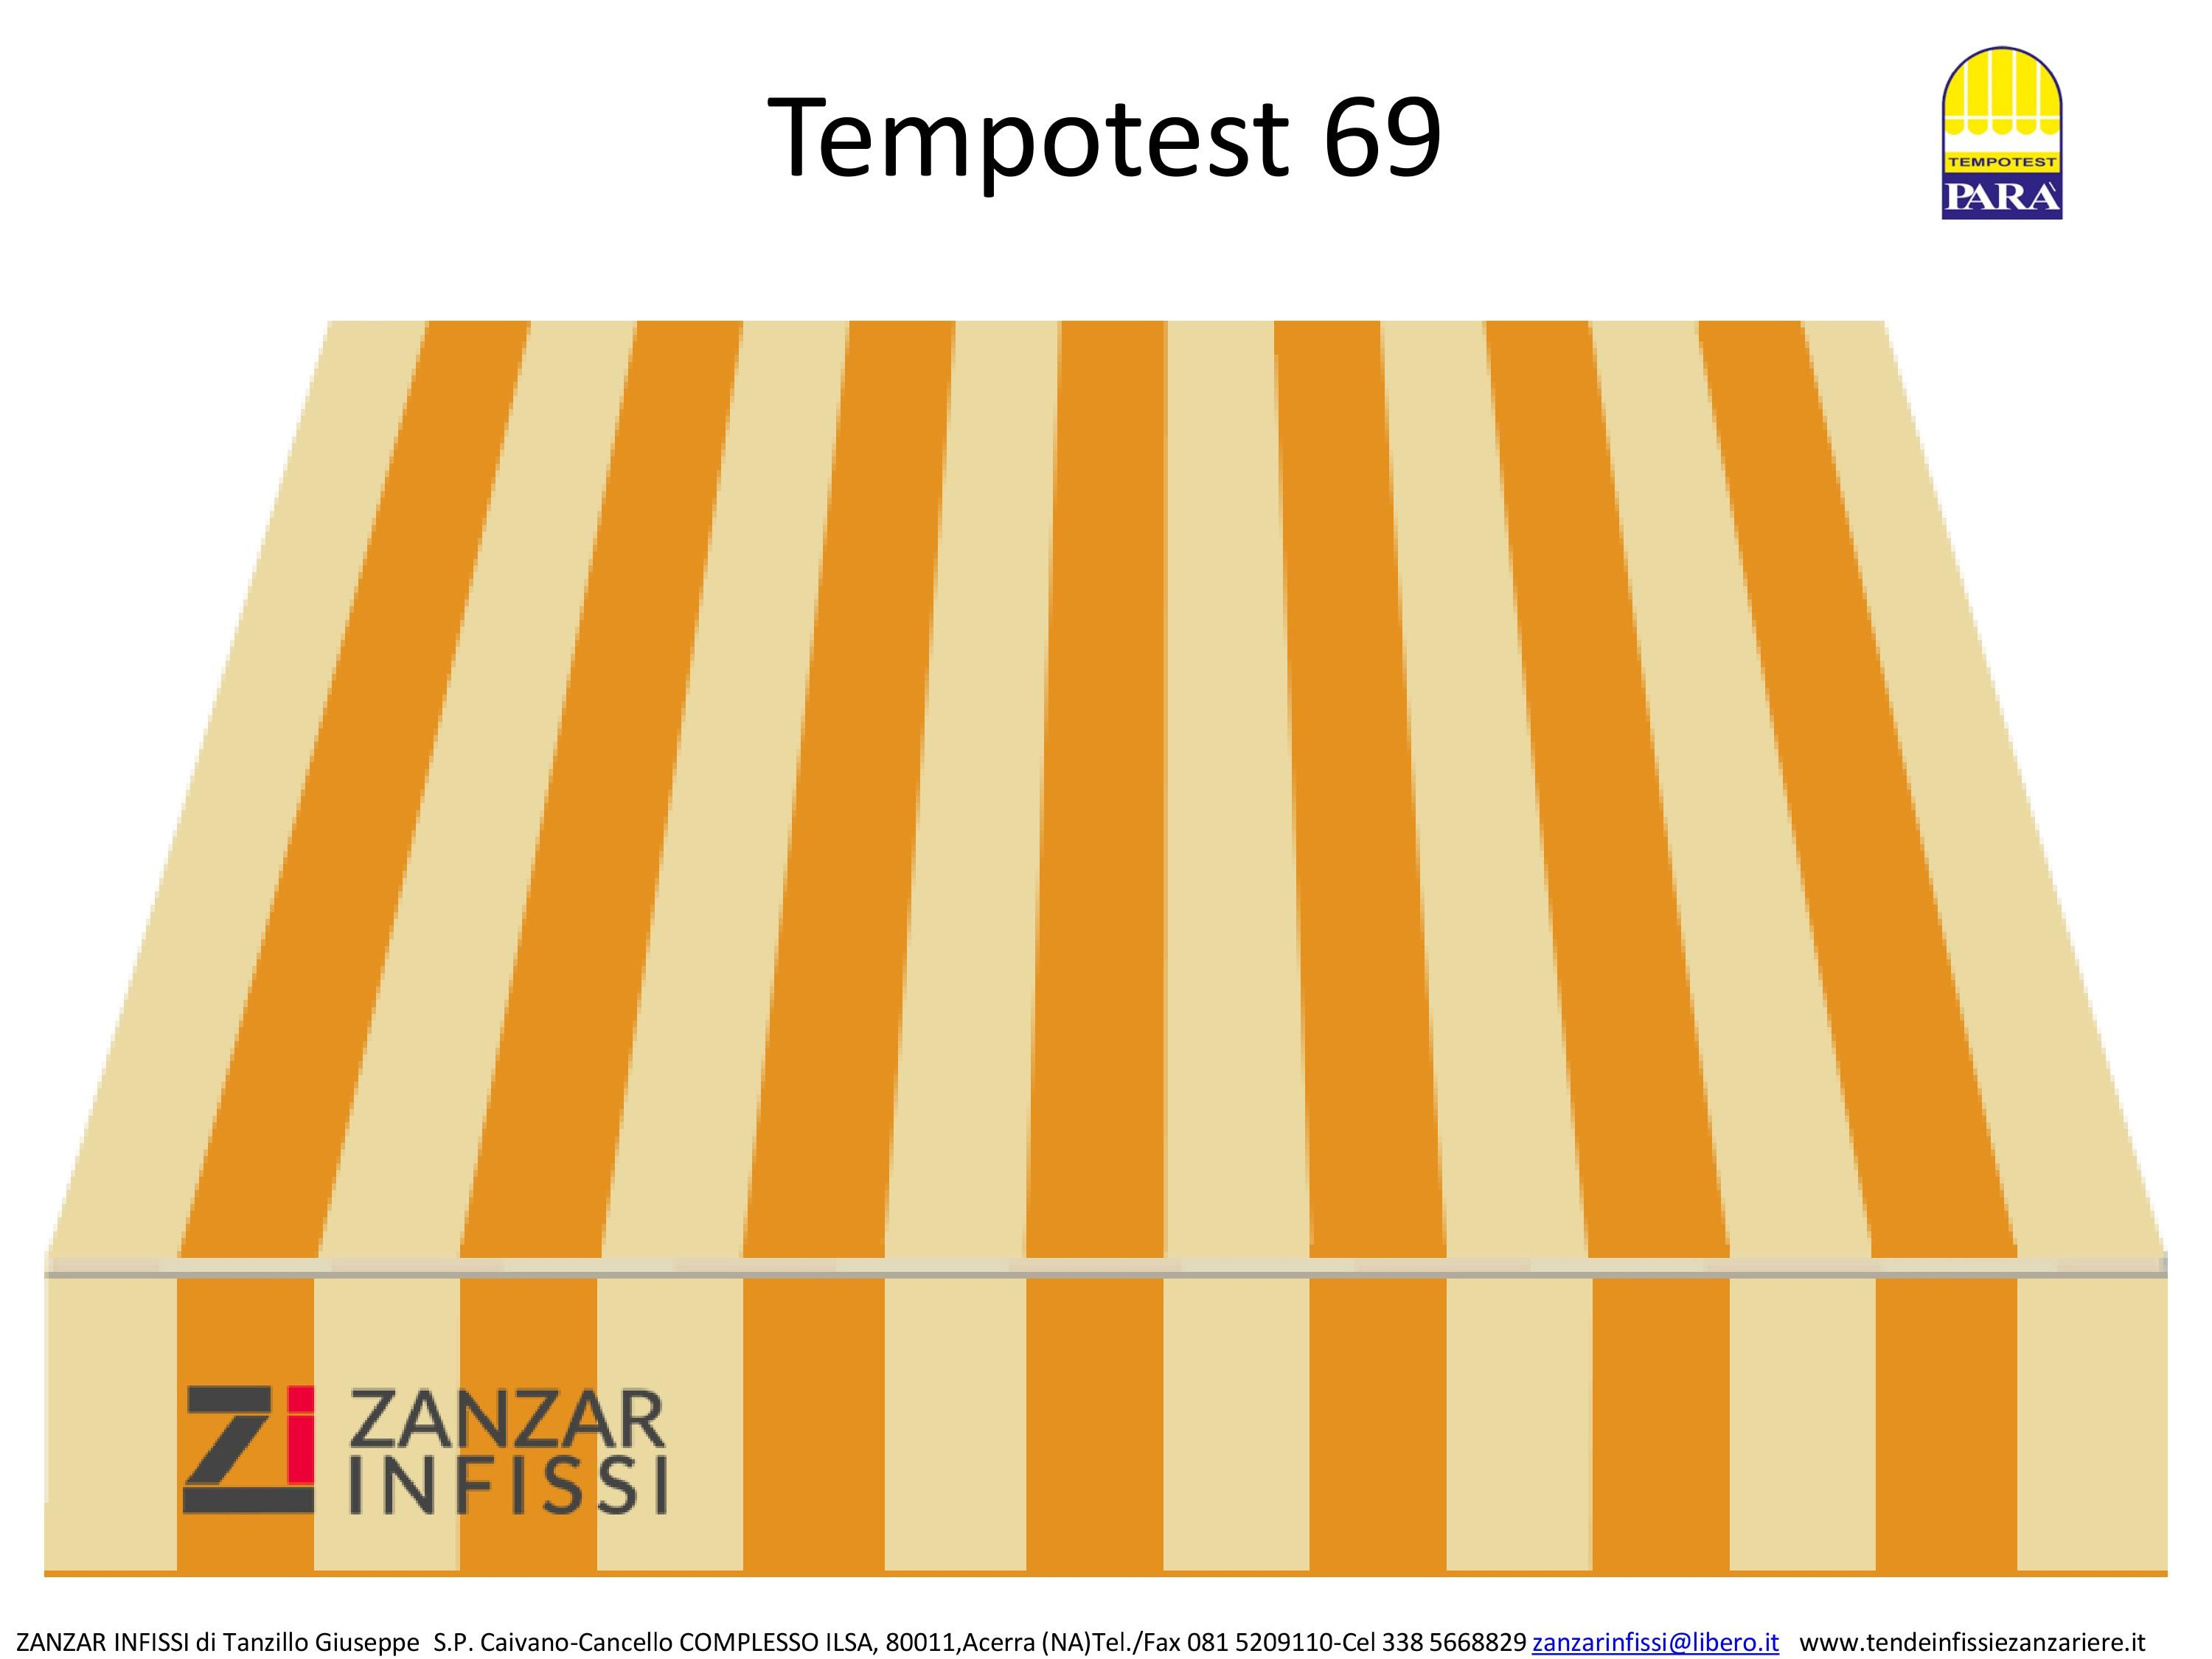 Tempotest 69